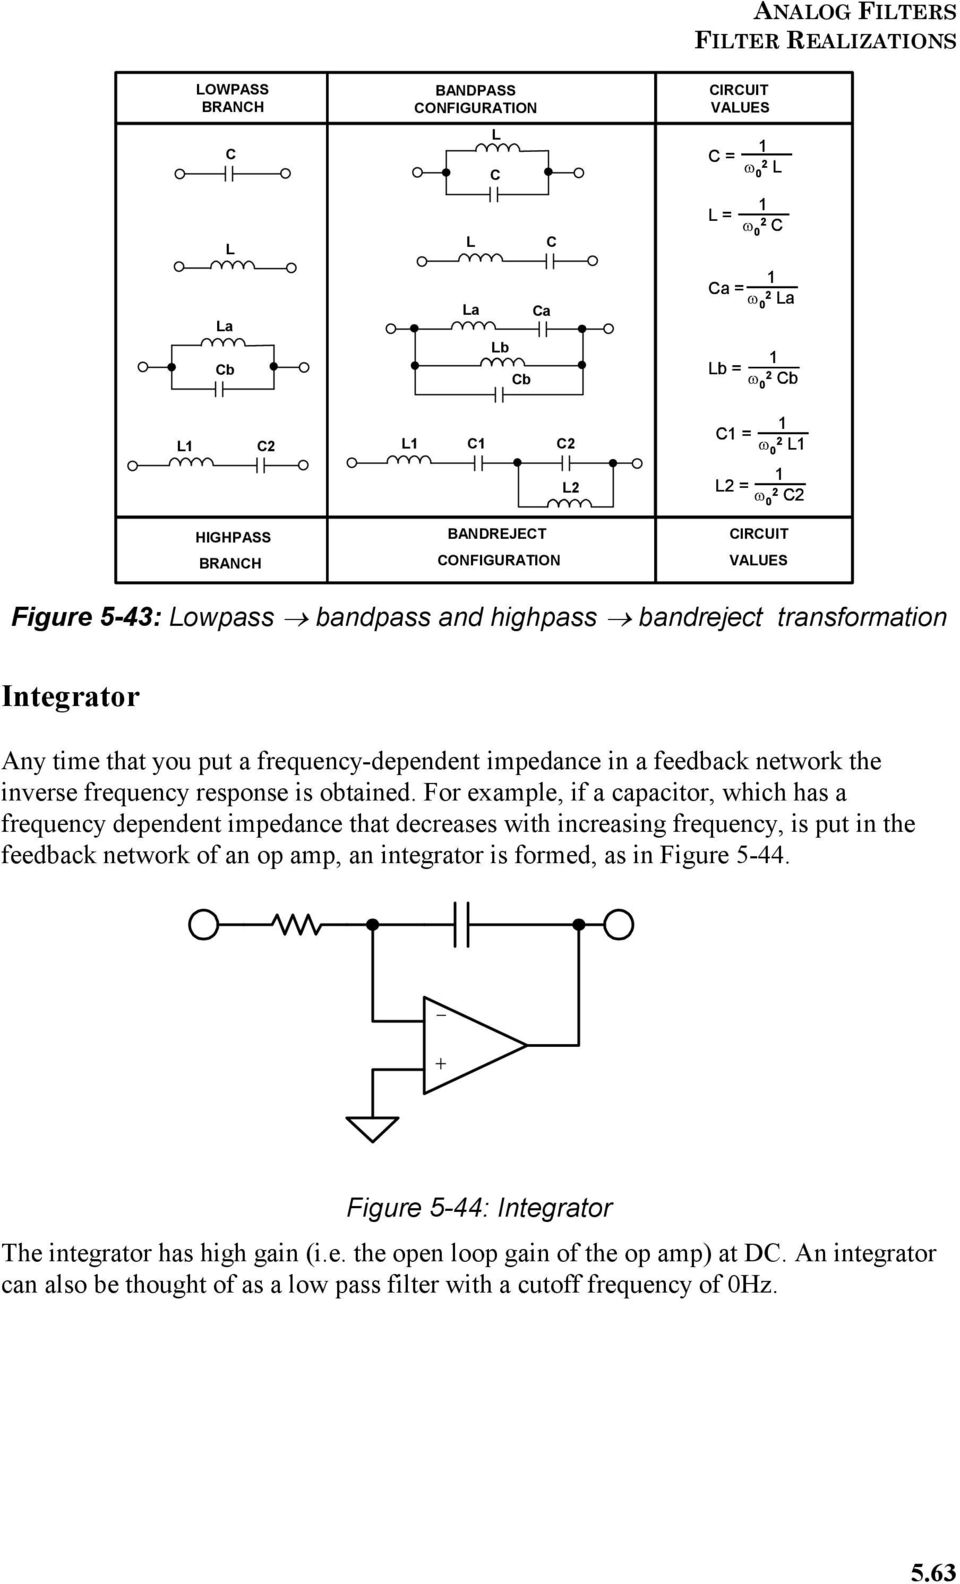 Section 5 Frequency Transformations Pdf How To Build Notch Filter Circuit Diagram Feedback Network The Inverse Response Is Obtained